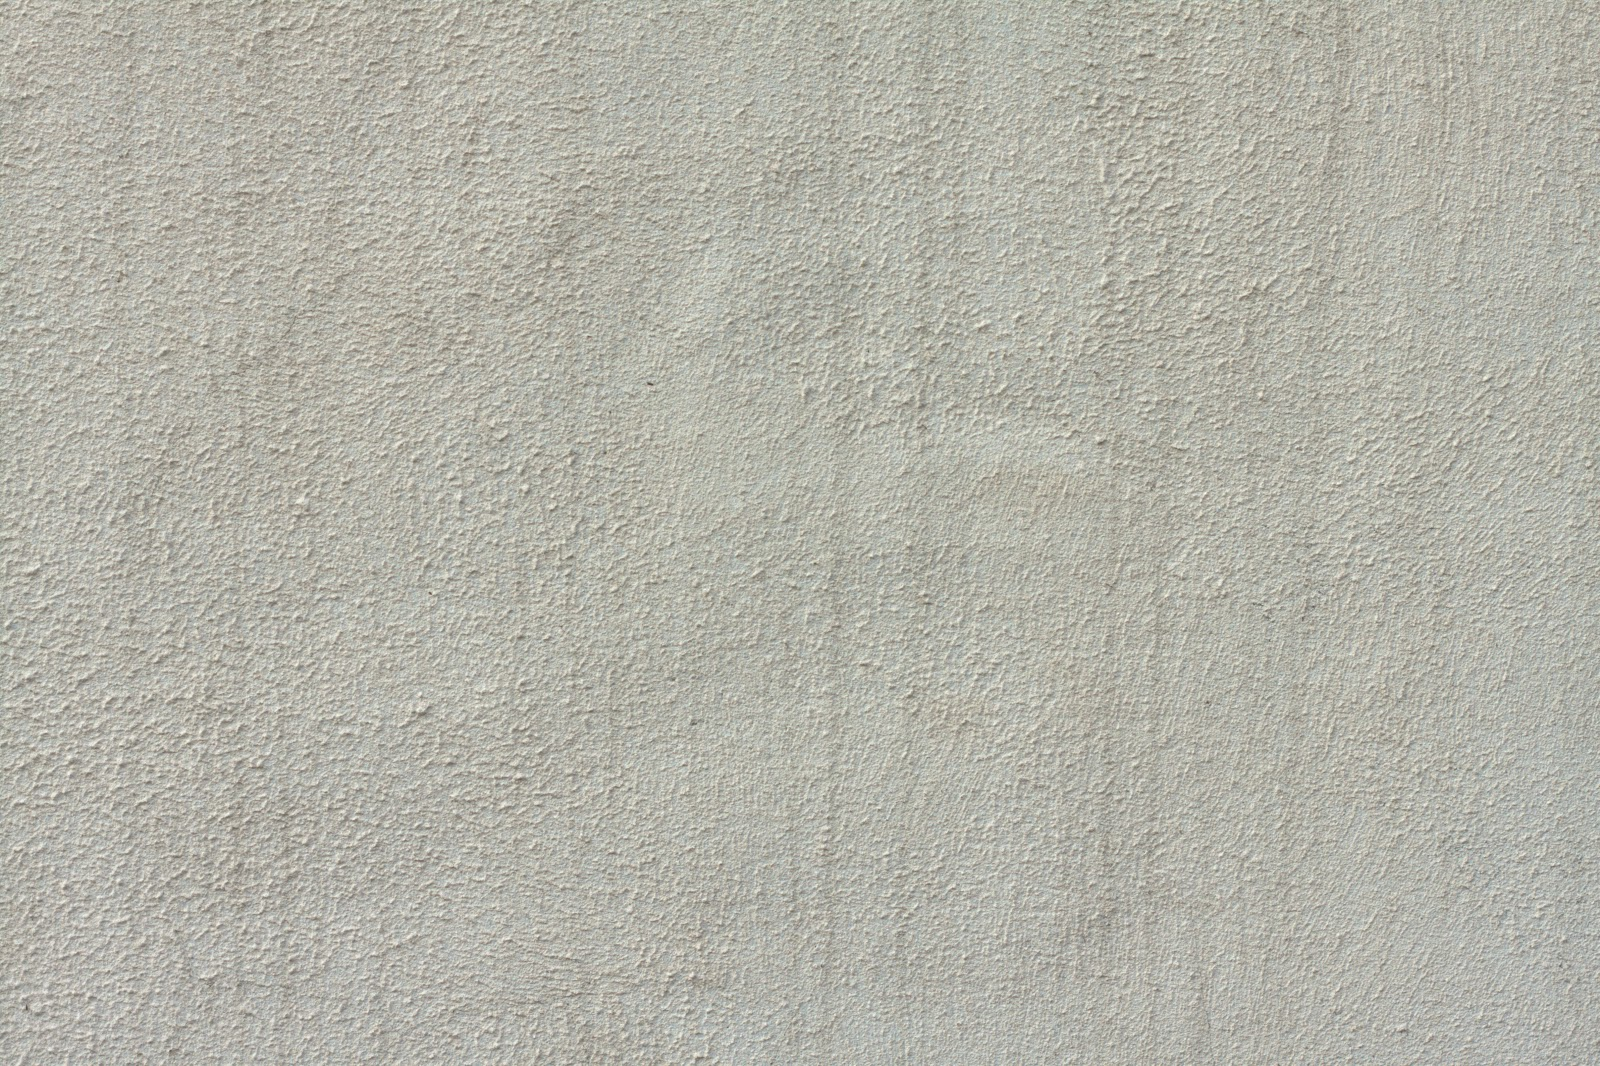 Stucco wall dirt lines feb_2015 texture 4770x3178